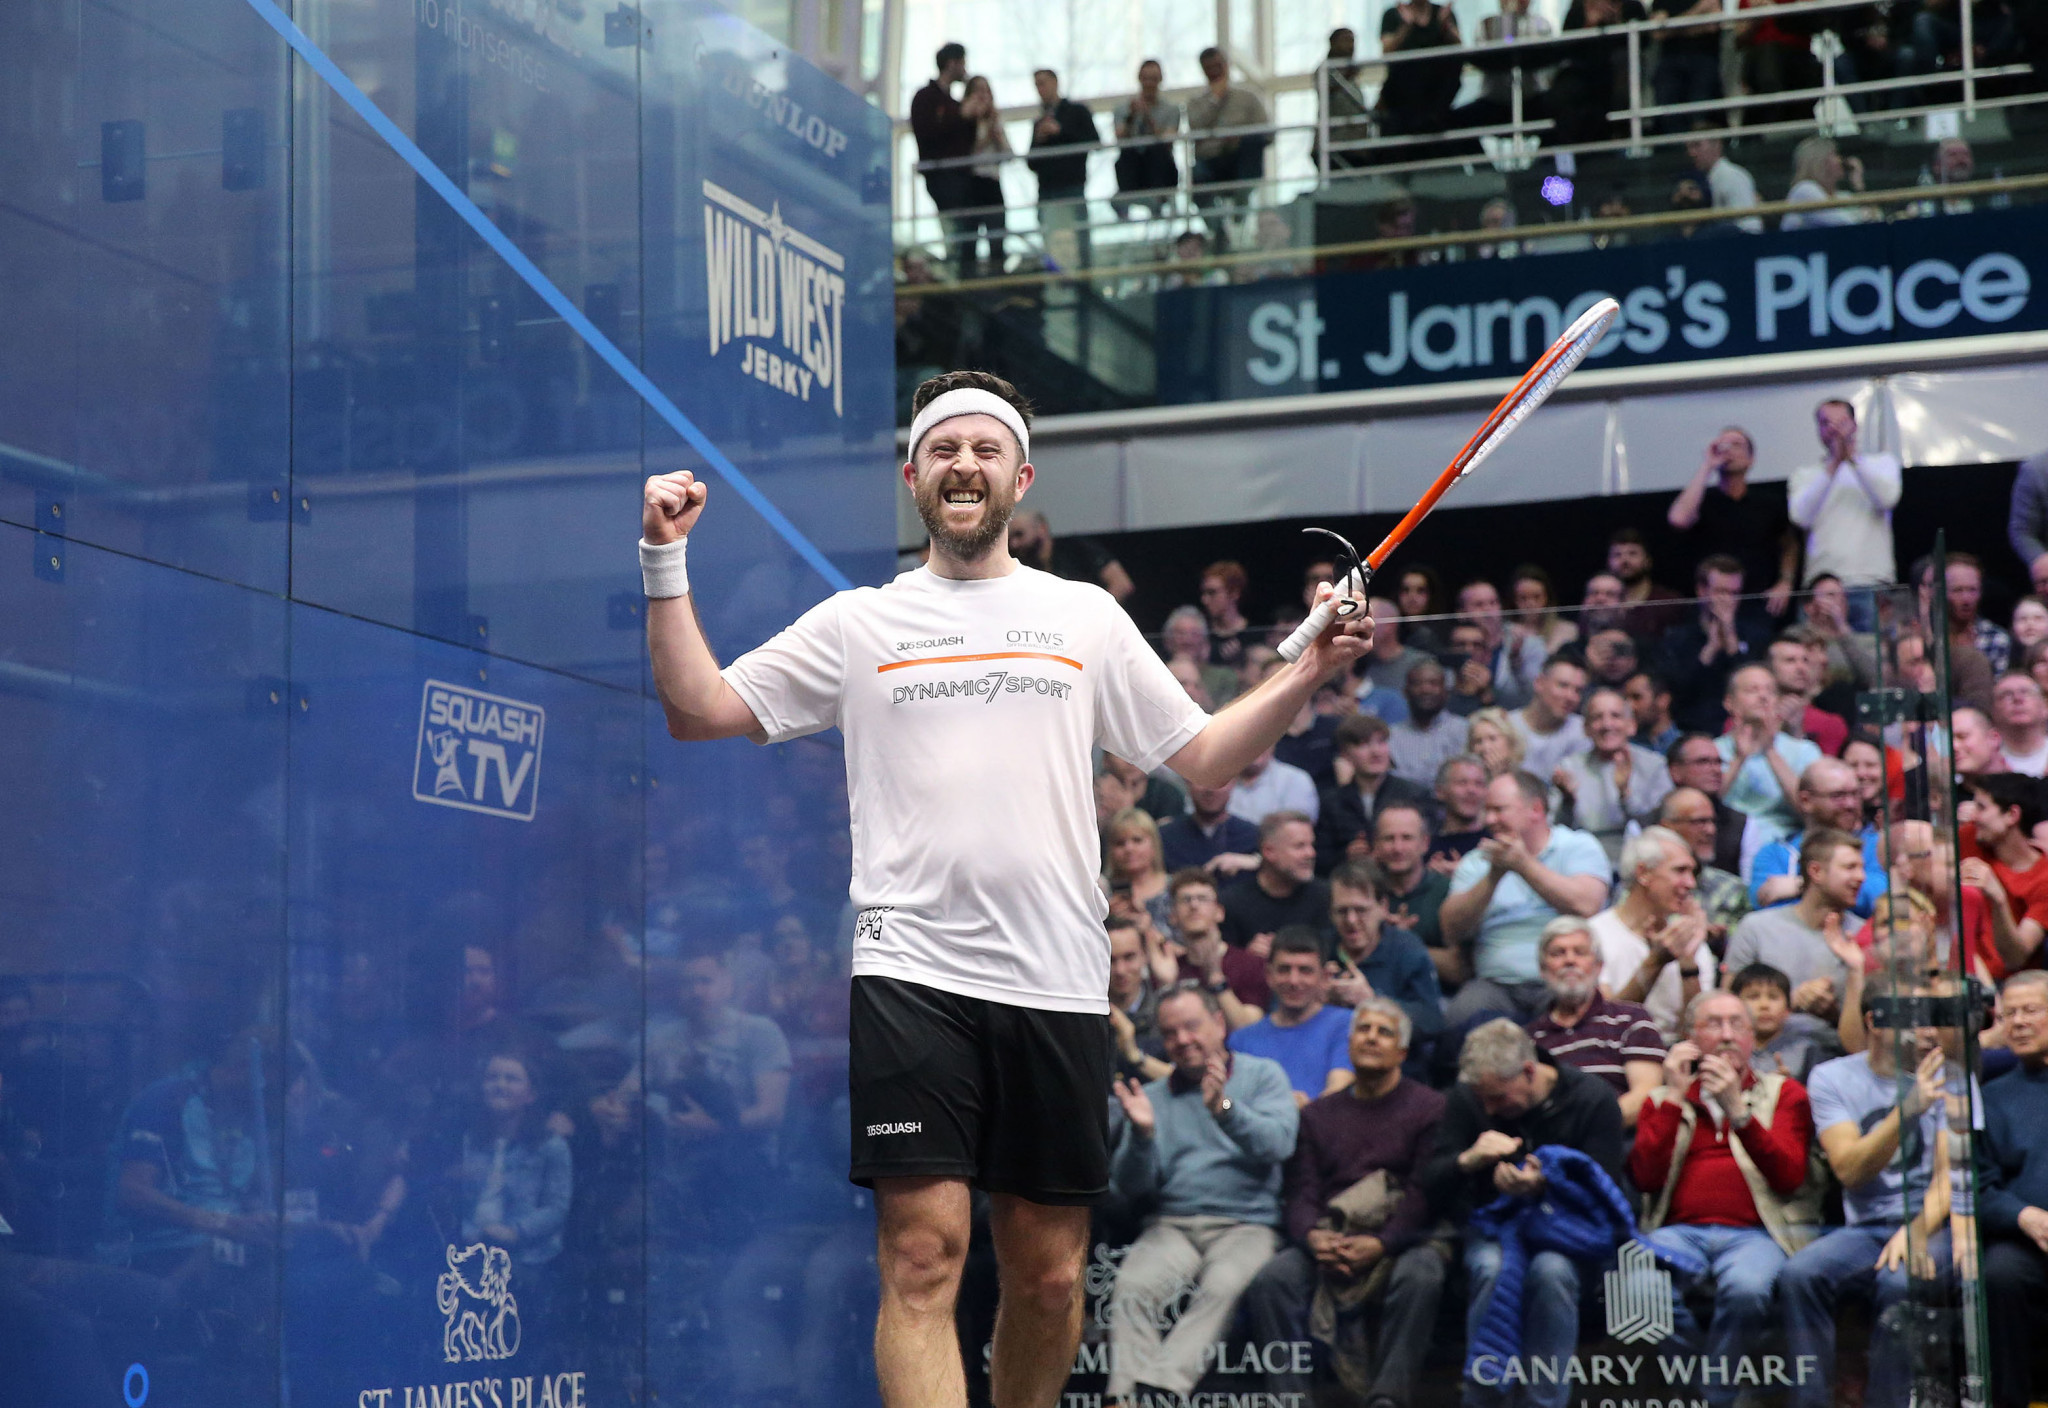 Daryl Selby provided the biggest shock at the St James's Place Canary Wharf Classic when he beat Joel Makin ©PSA